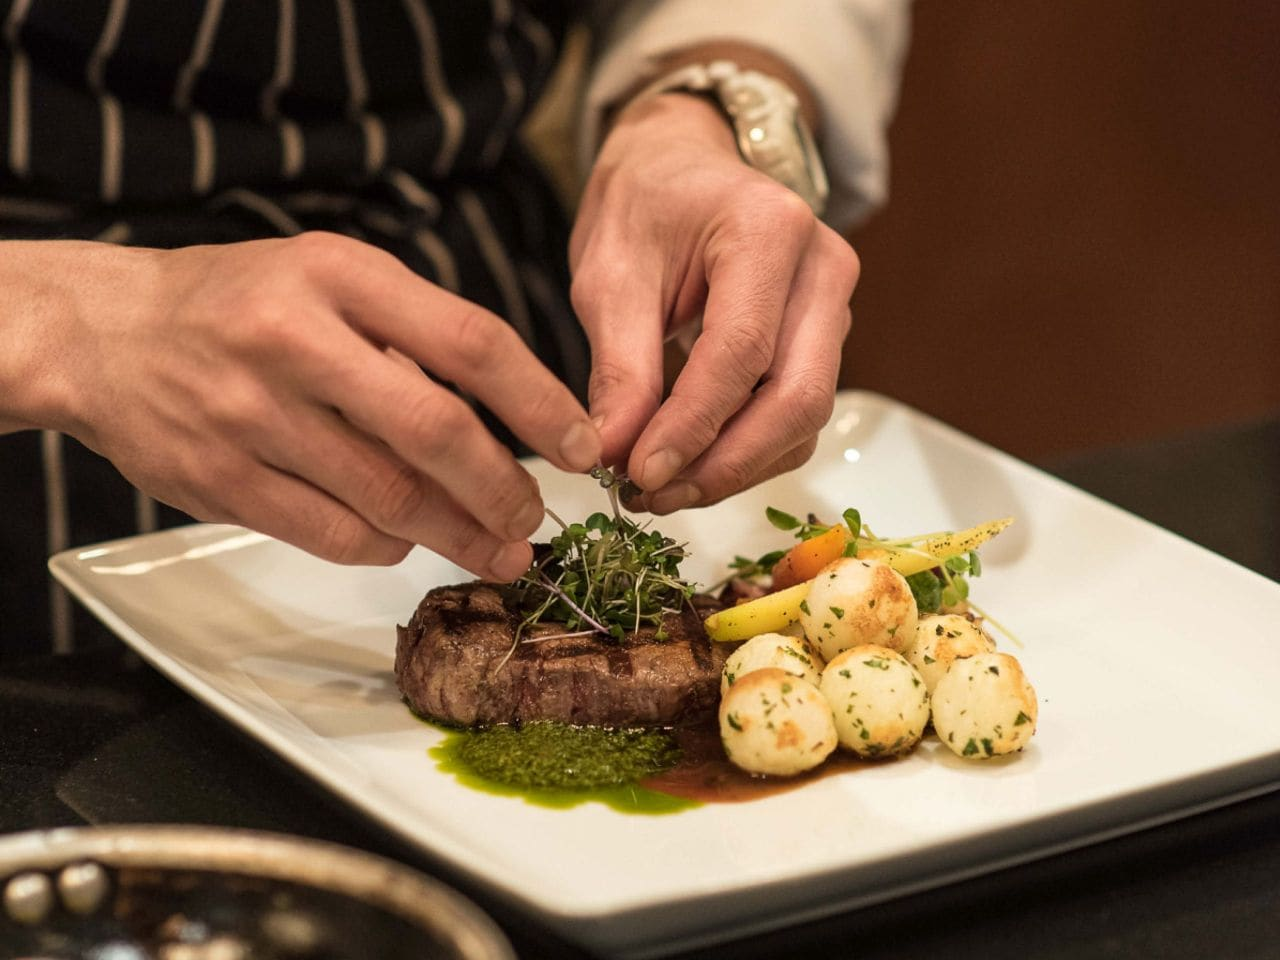 Chef plating steak and potatoes